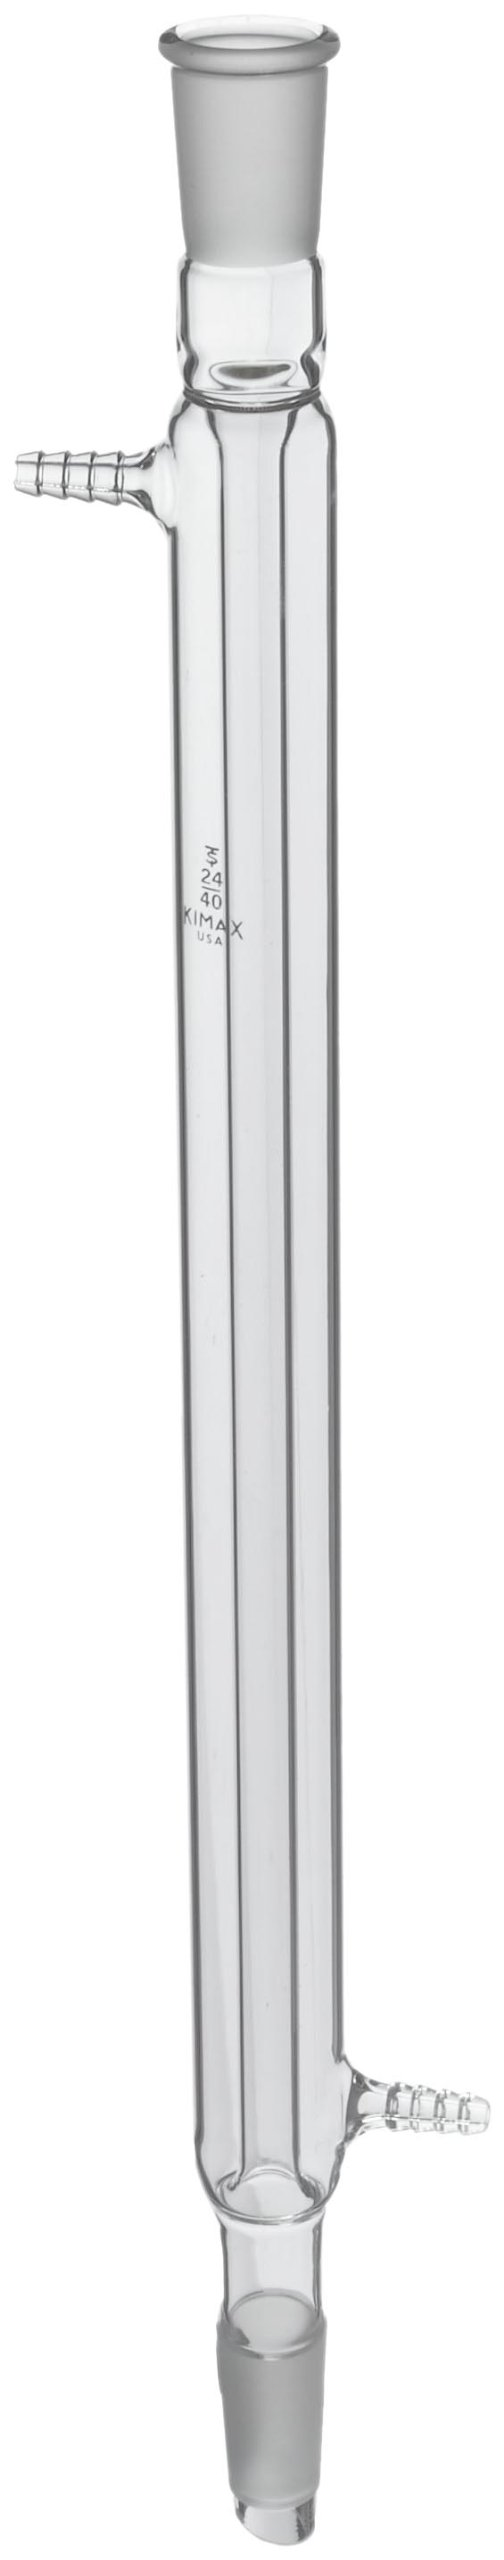 Kimble 18140-400 Glass Liebig Condenser with Drip Tip and Full Length, 24/40 Joint, 400mm Jacket Length